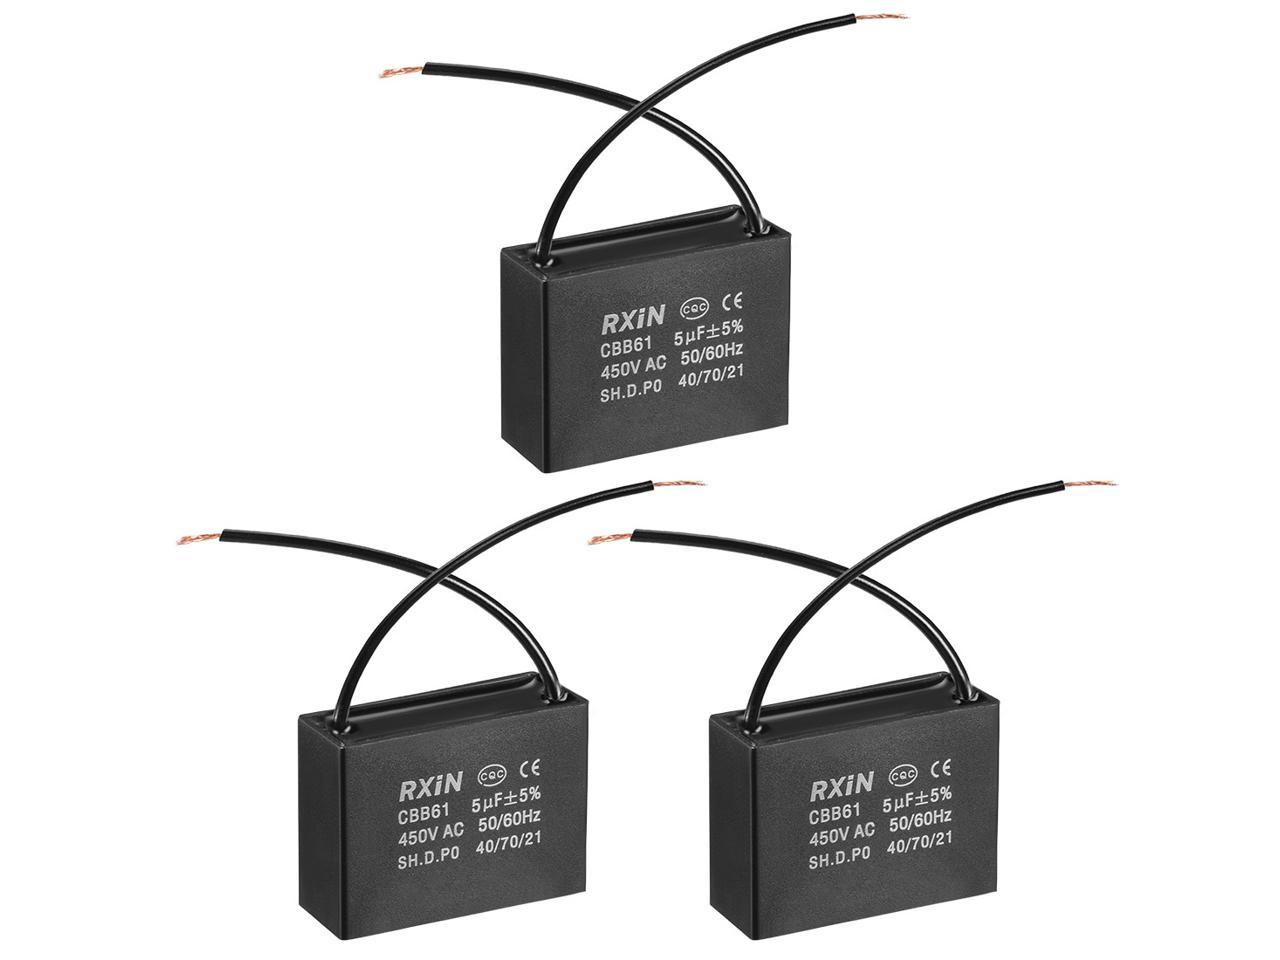 Cbb61 Run Capacitor 450v Ac 5uf 2 Wires Metallized